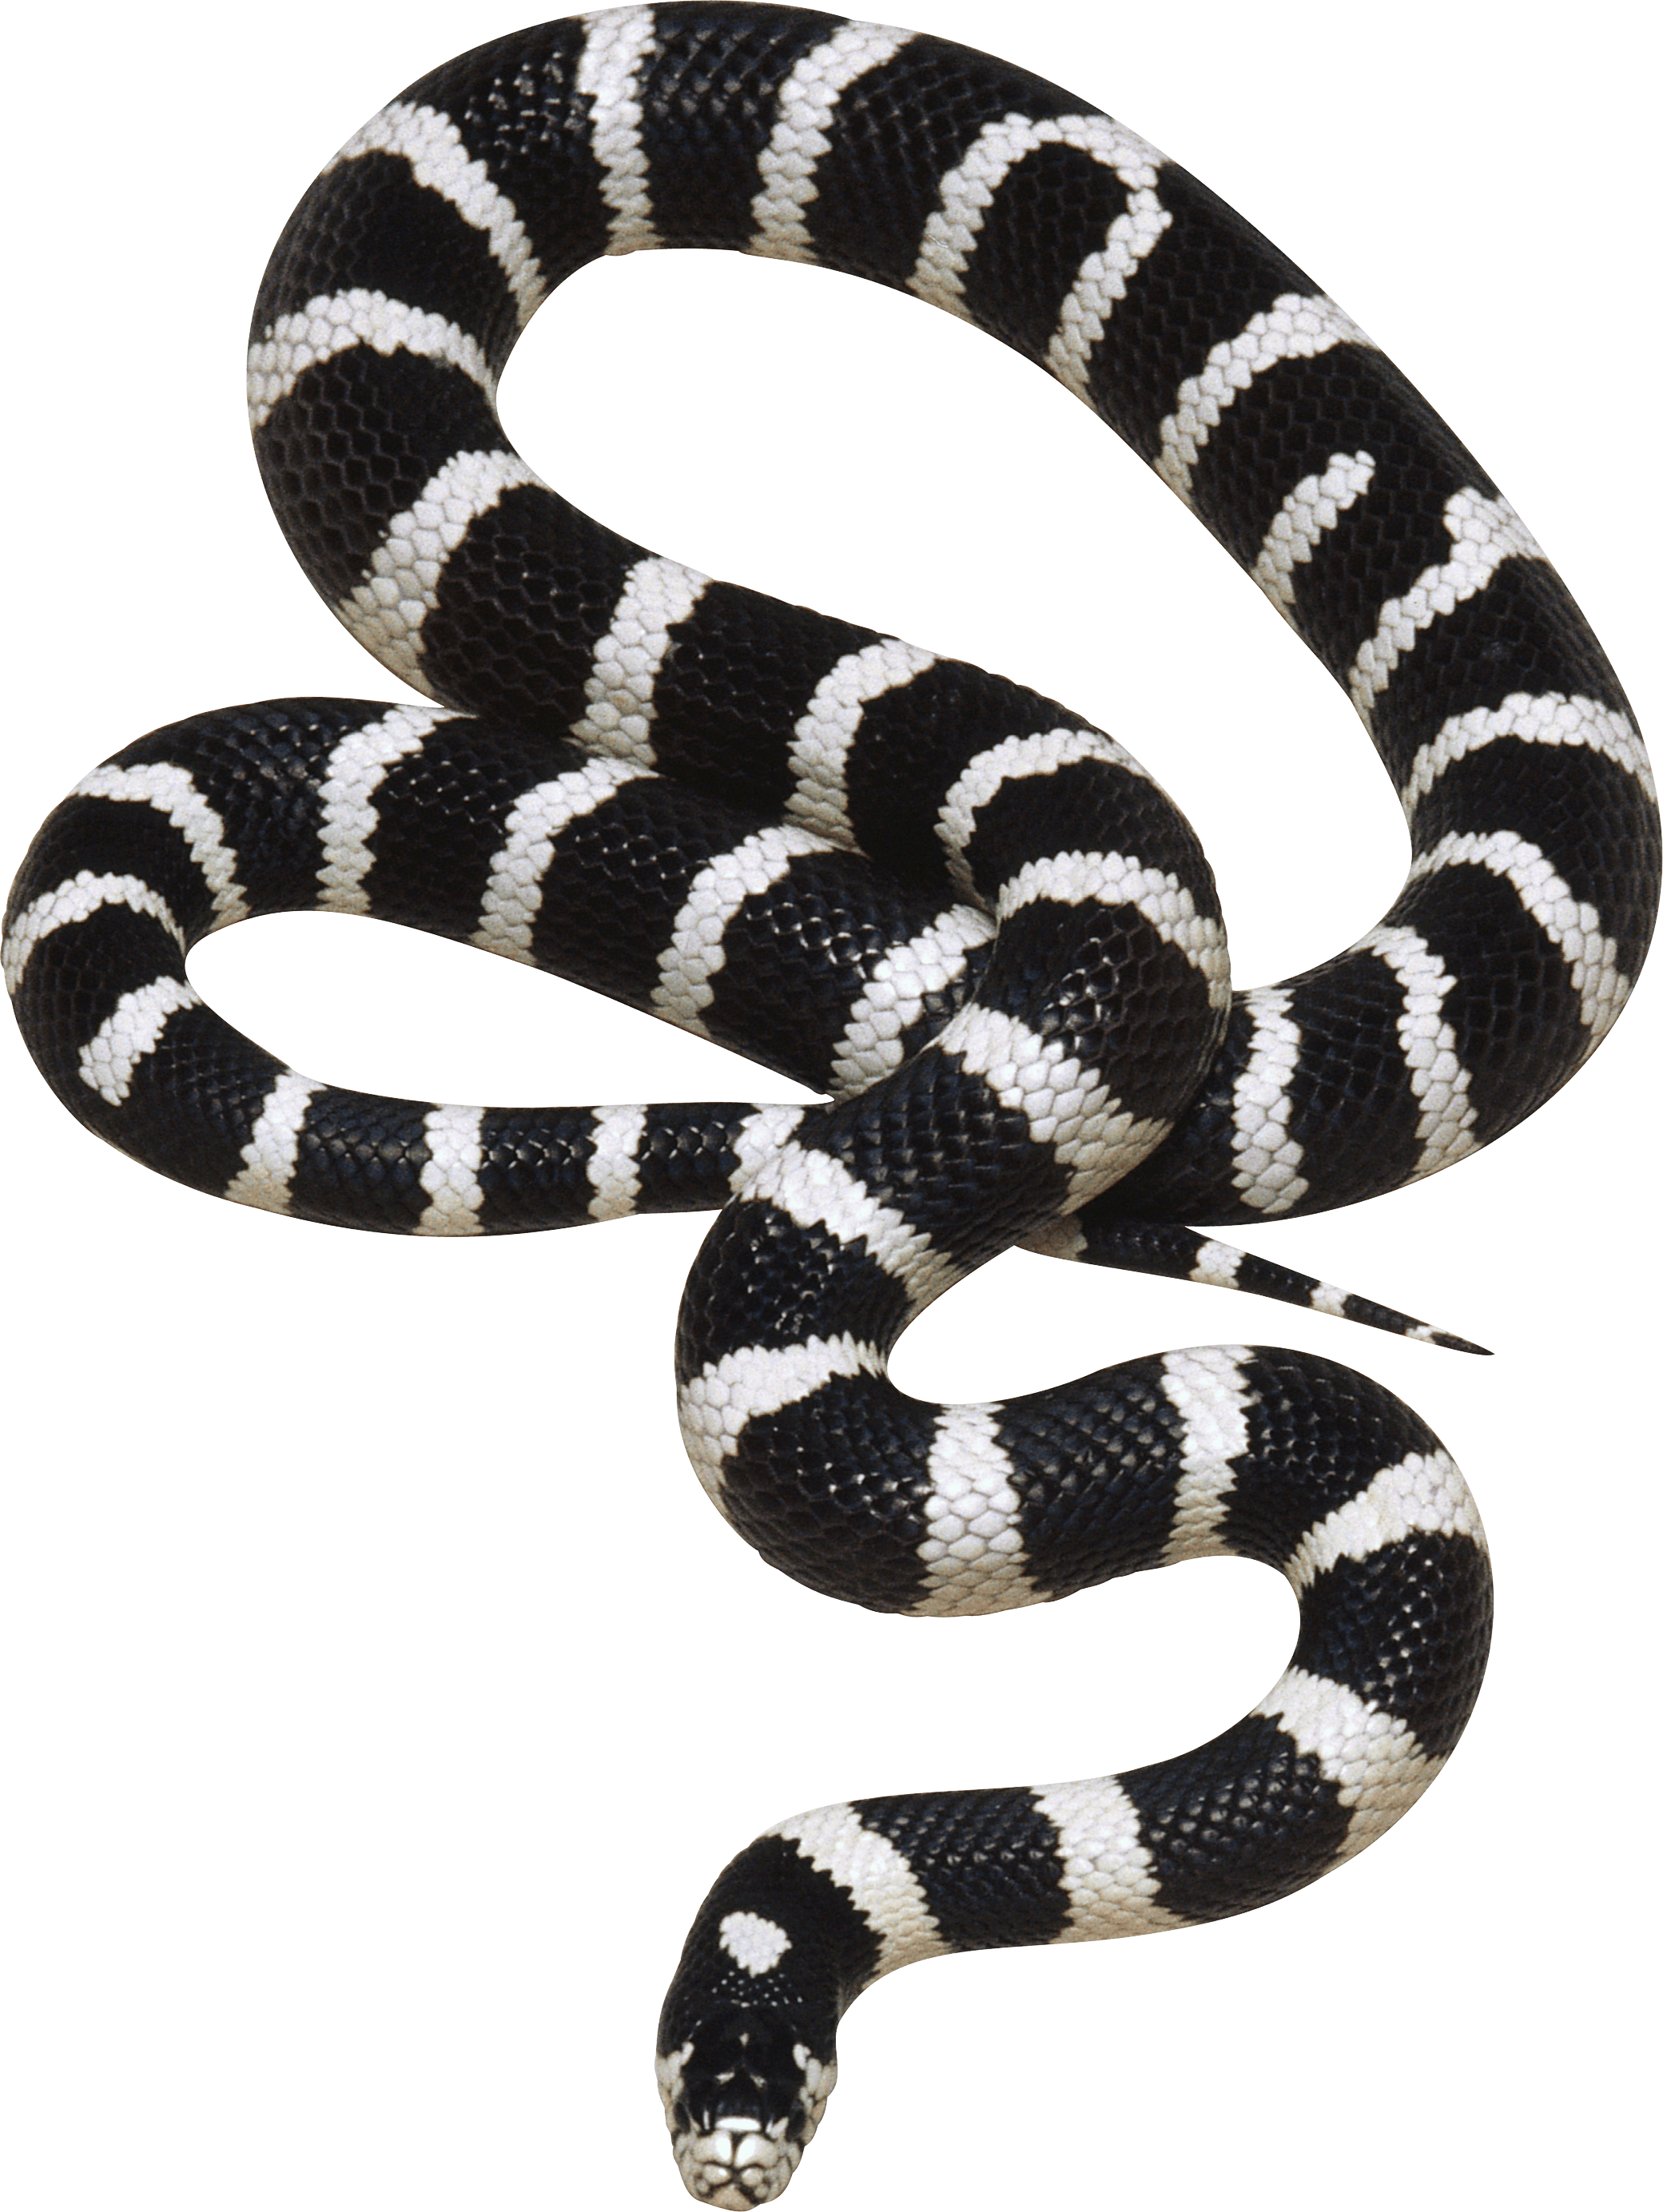 Black and White Snake PNG Image